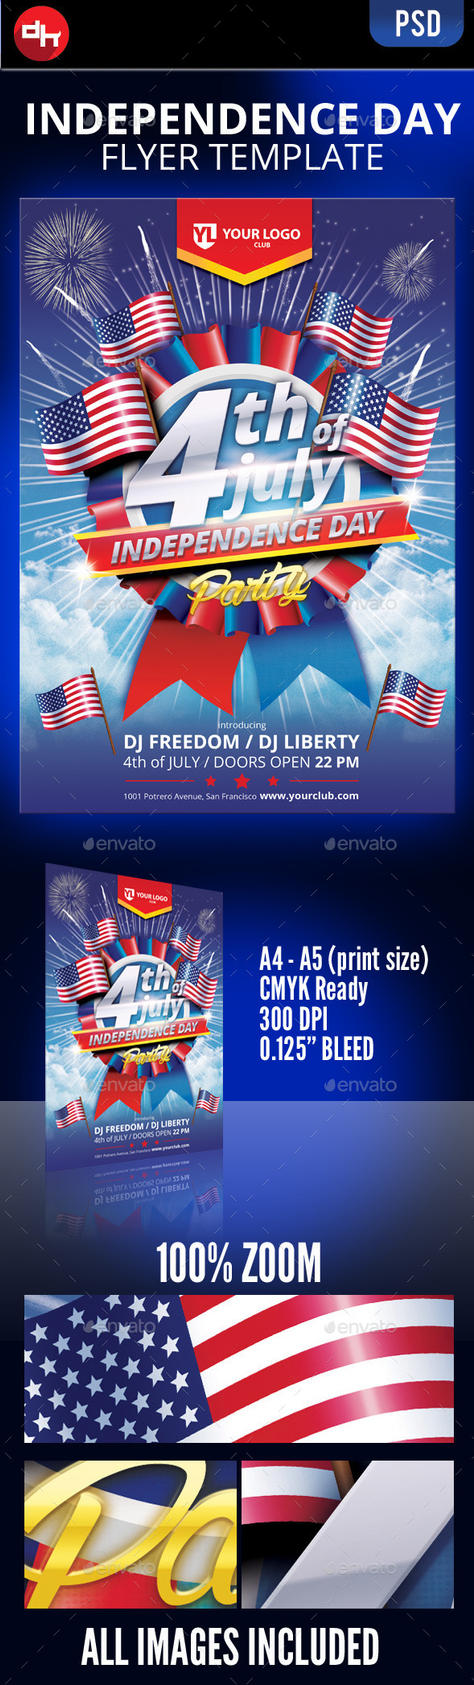 4th of July Flyer Template by doghead